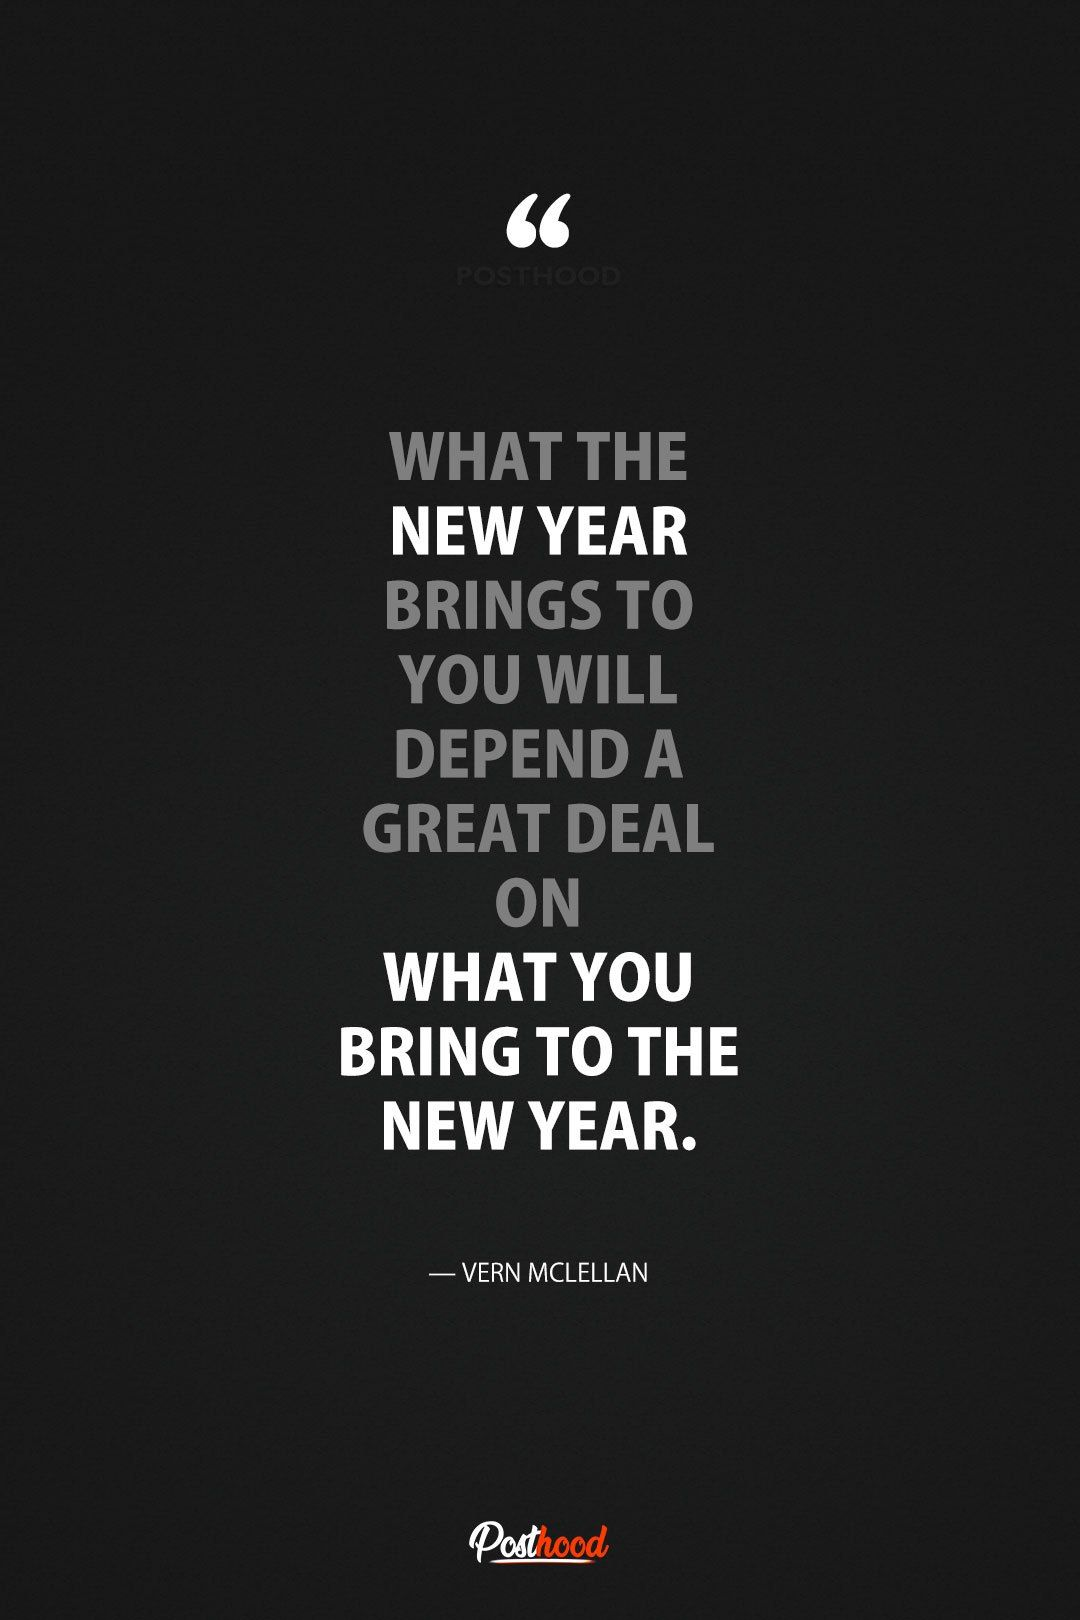 32 Best Motivational Quotes For New Year Resolutions